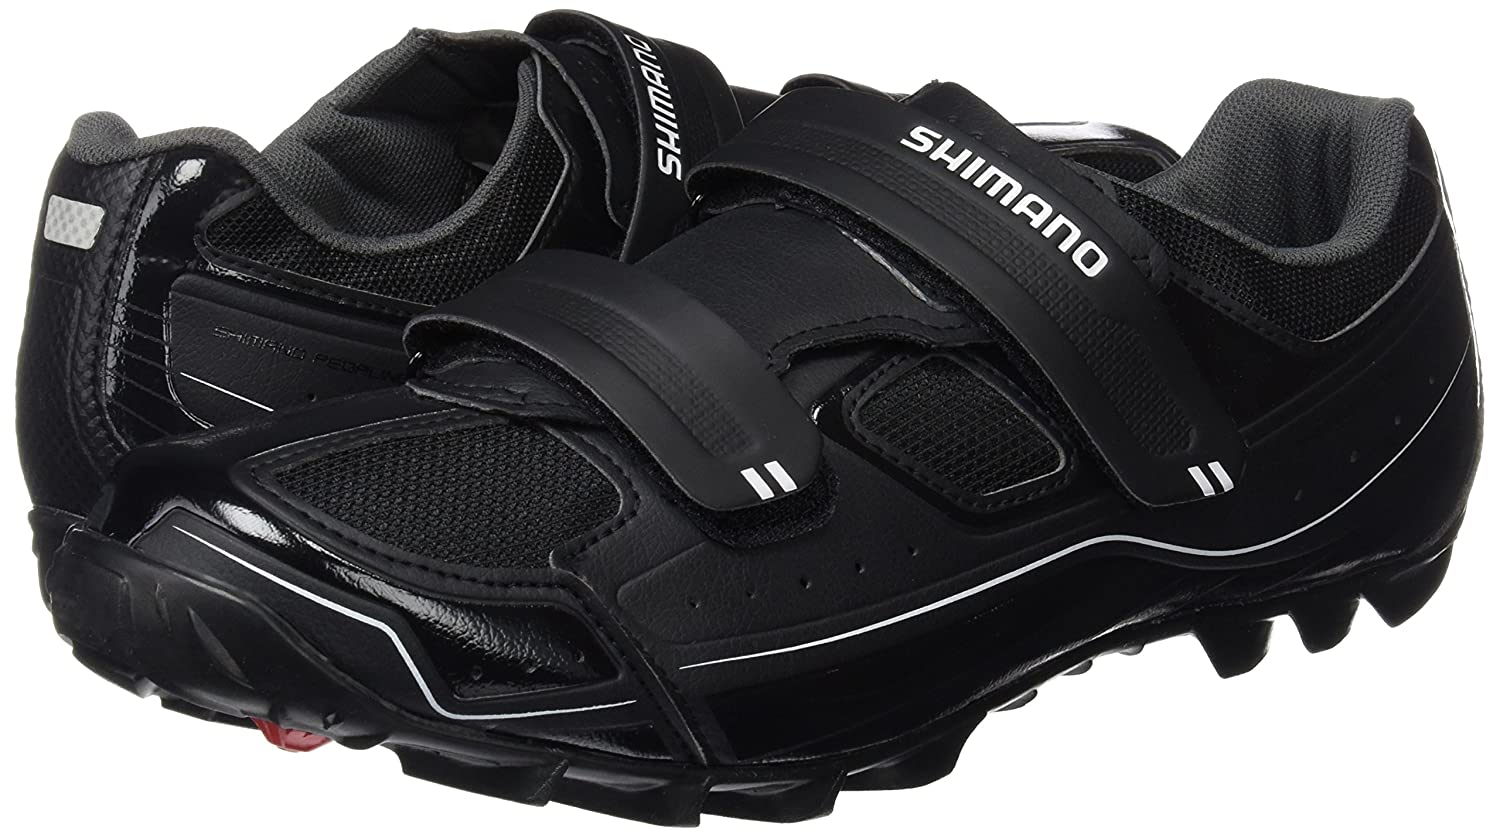 Shimano SPD M065 Mountain Bike MTB Cycling Bicycle Shoes 47: Amazon.es: Deportes y aire libre